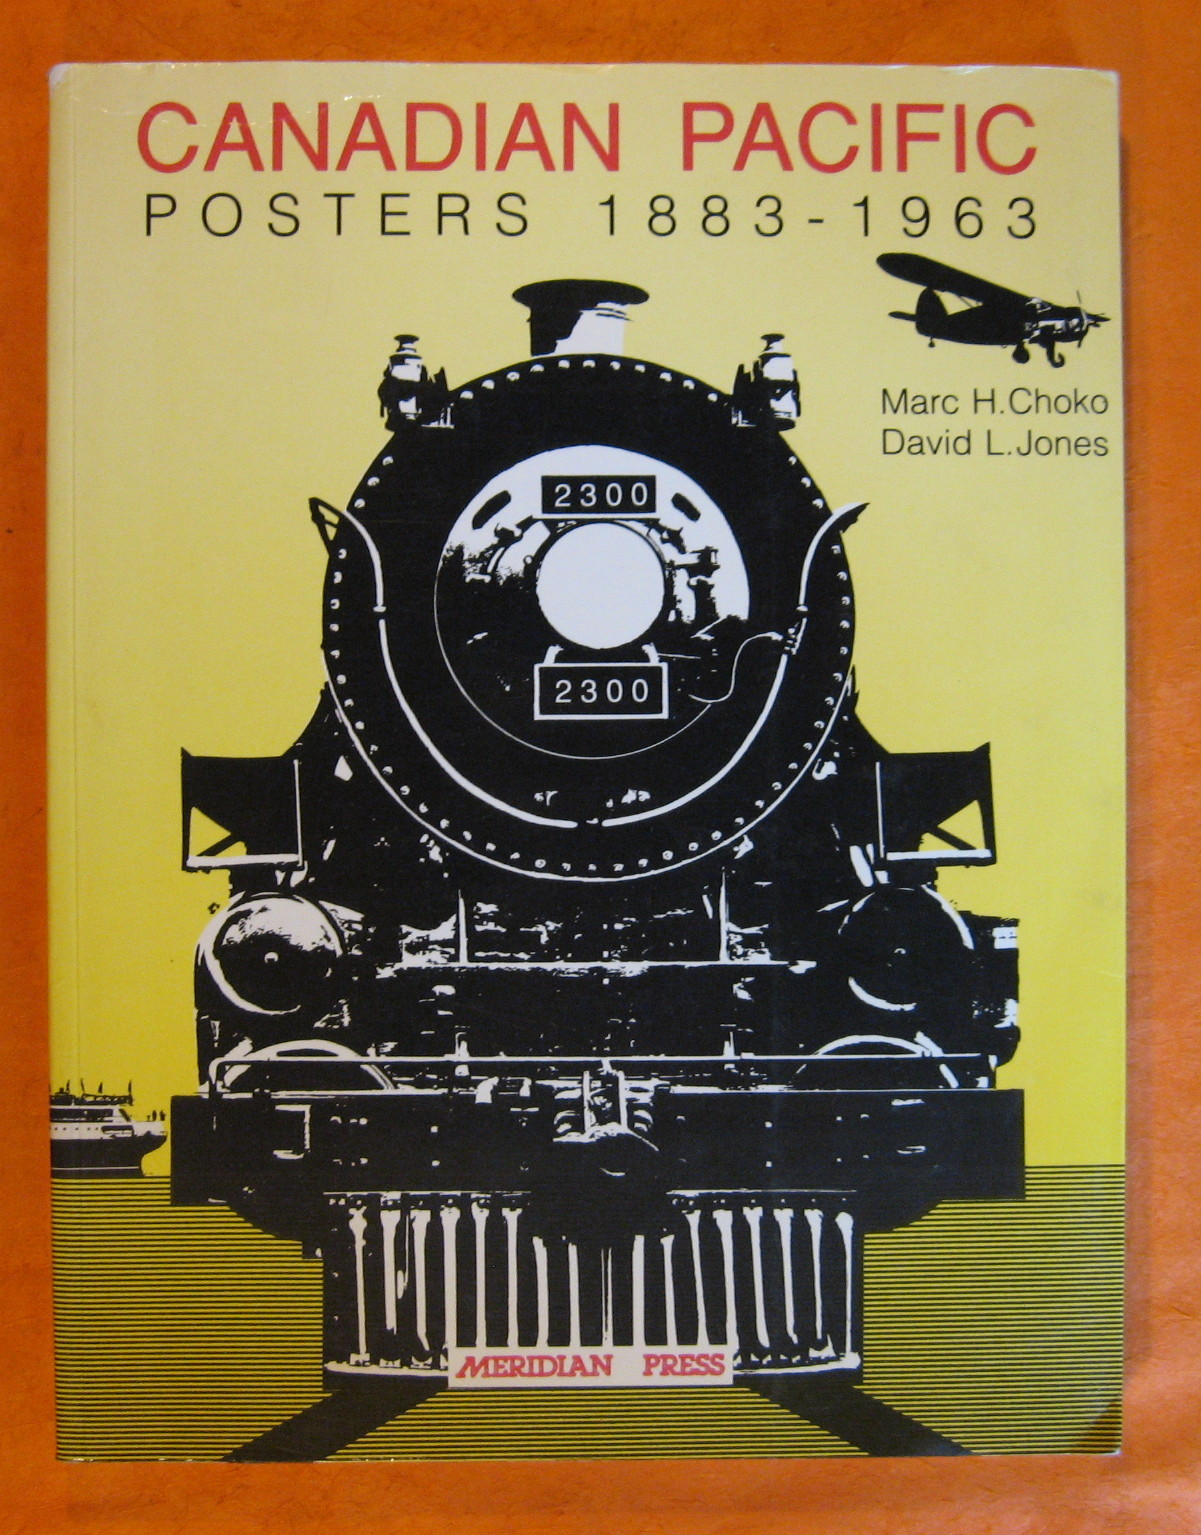 Canadian Pacific Posters, 1883-1963, Choko, Marc H.; Jones, David L.